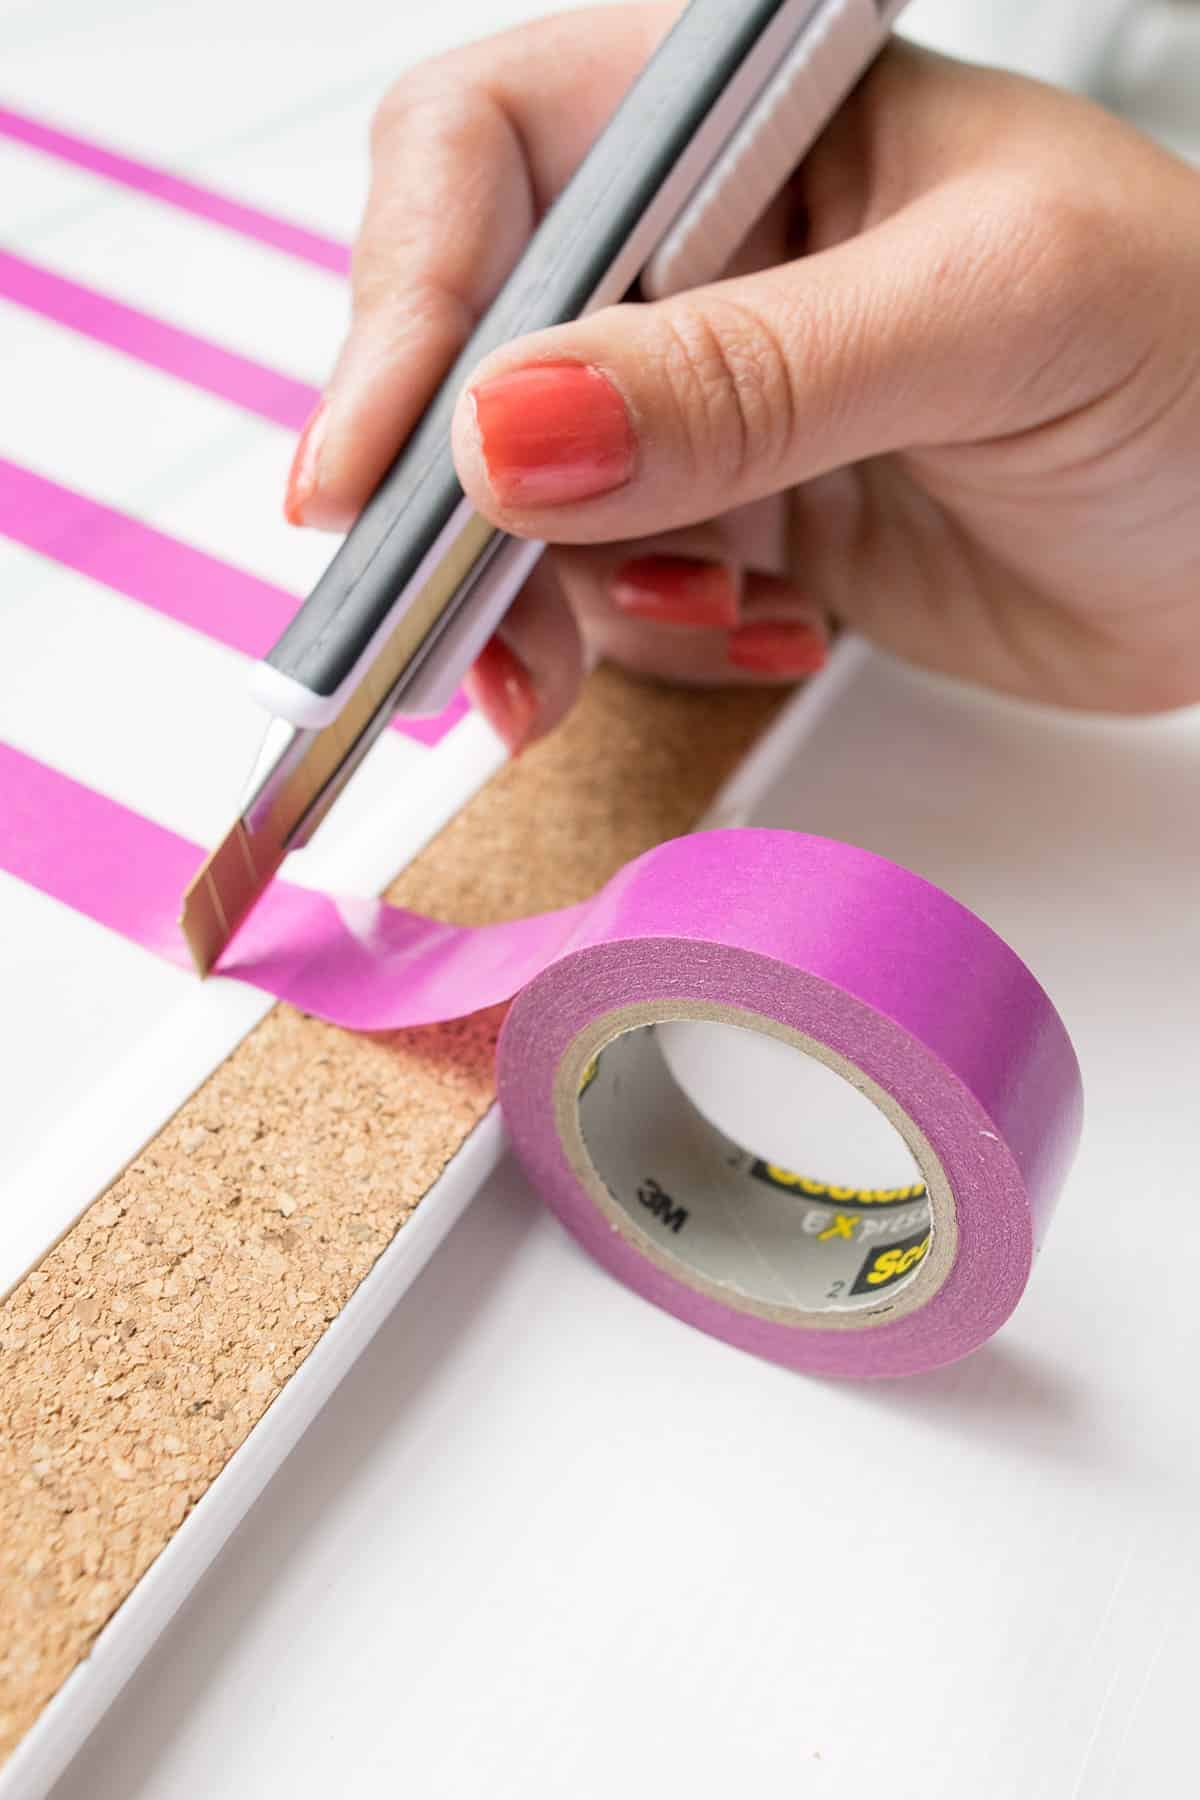 Pink double sided tape applied to dry erase board for DIY weekly chore chart.